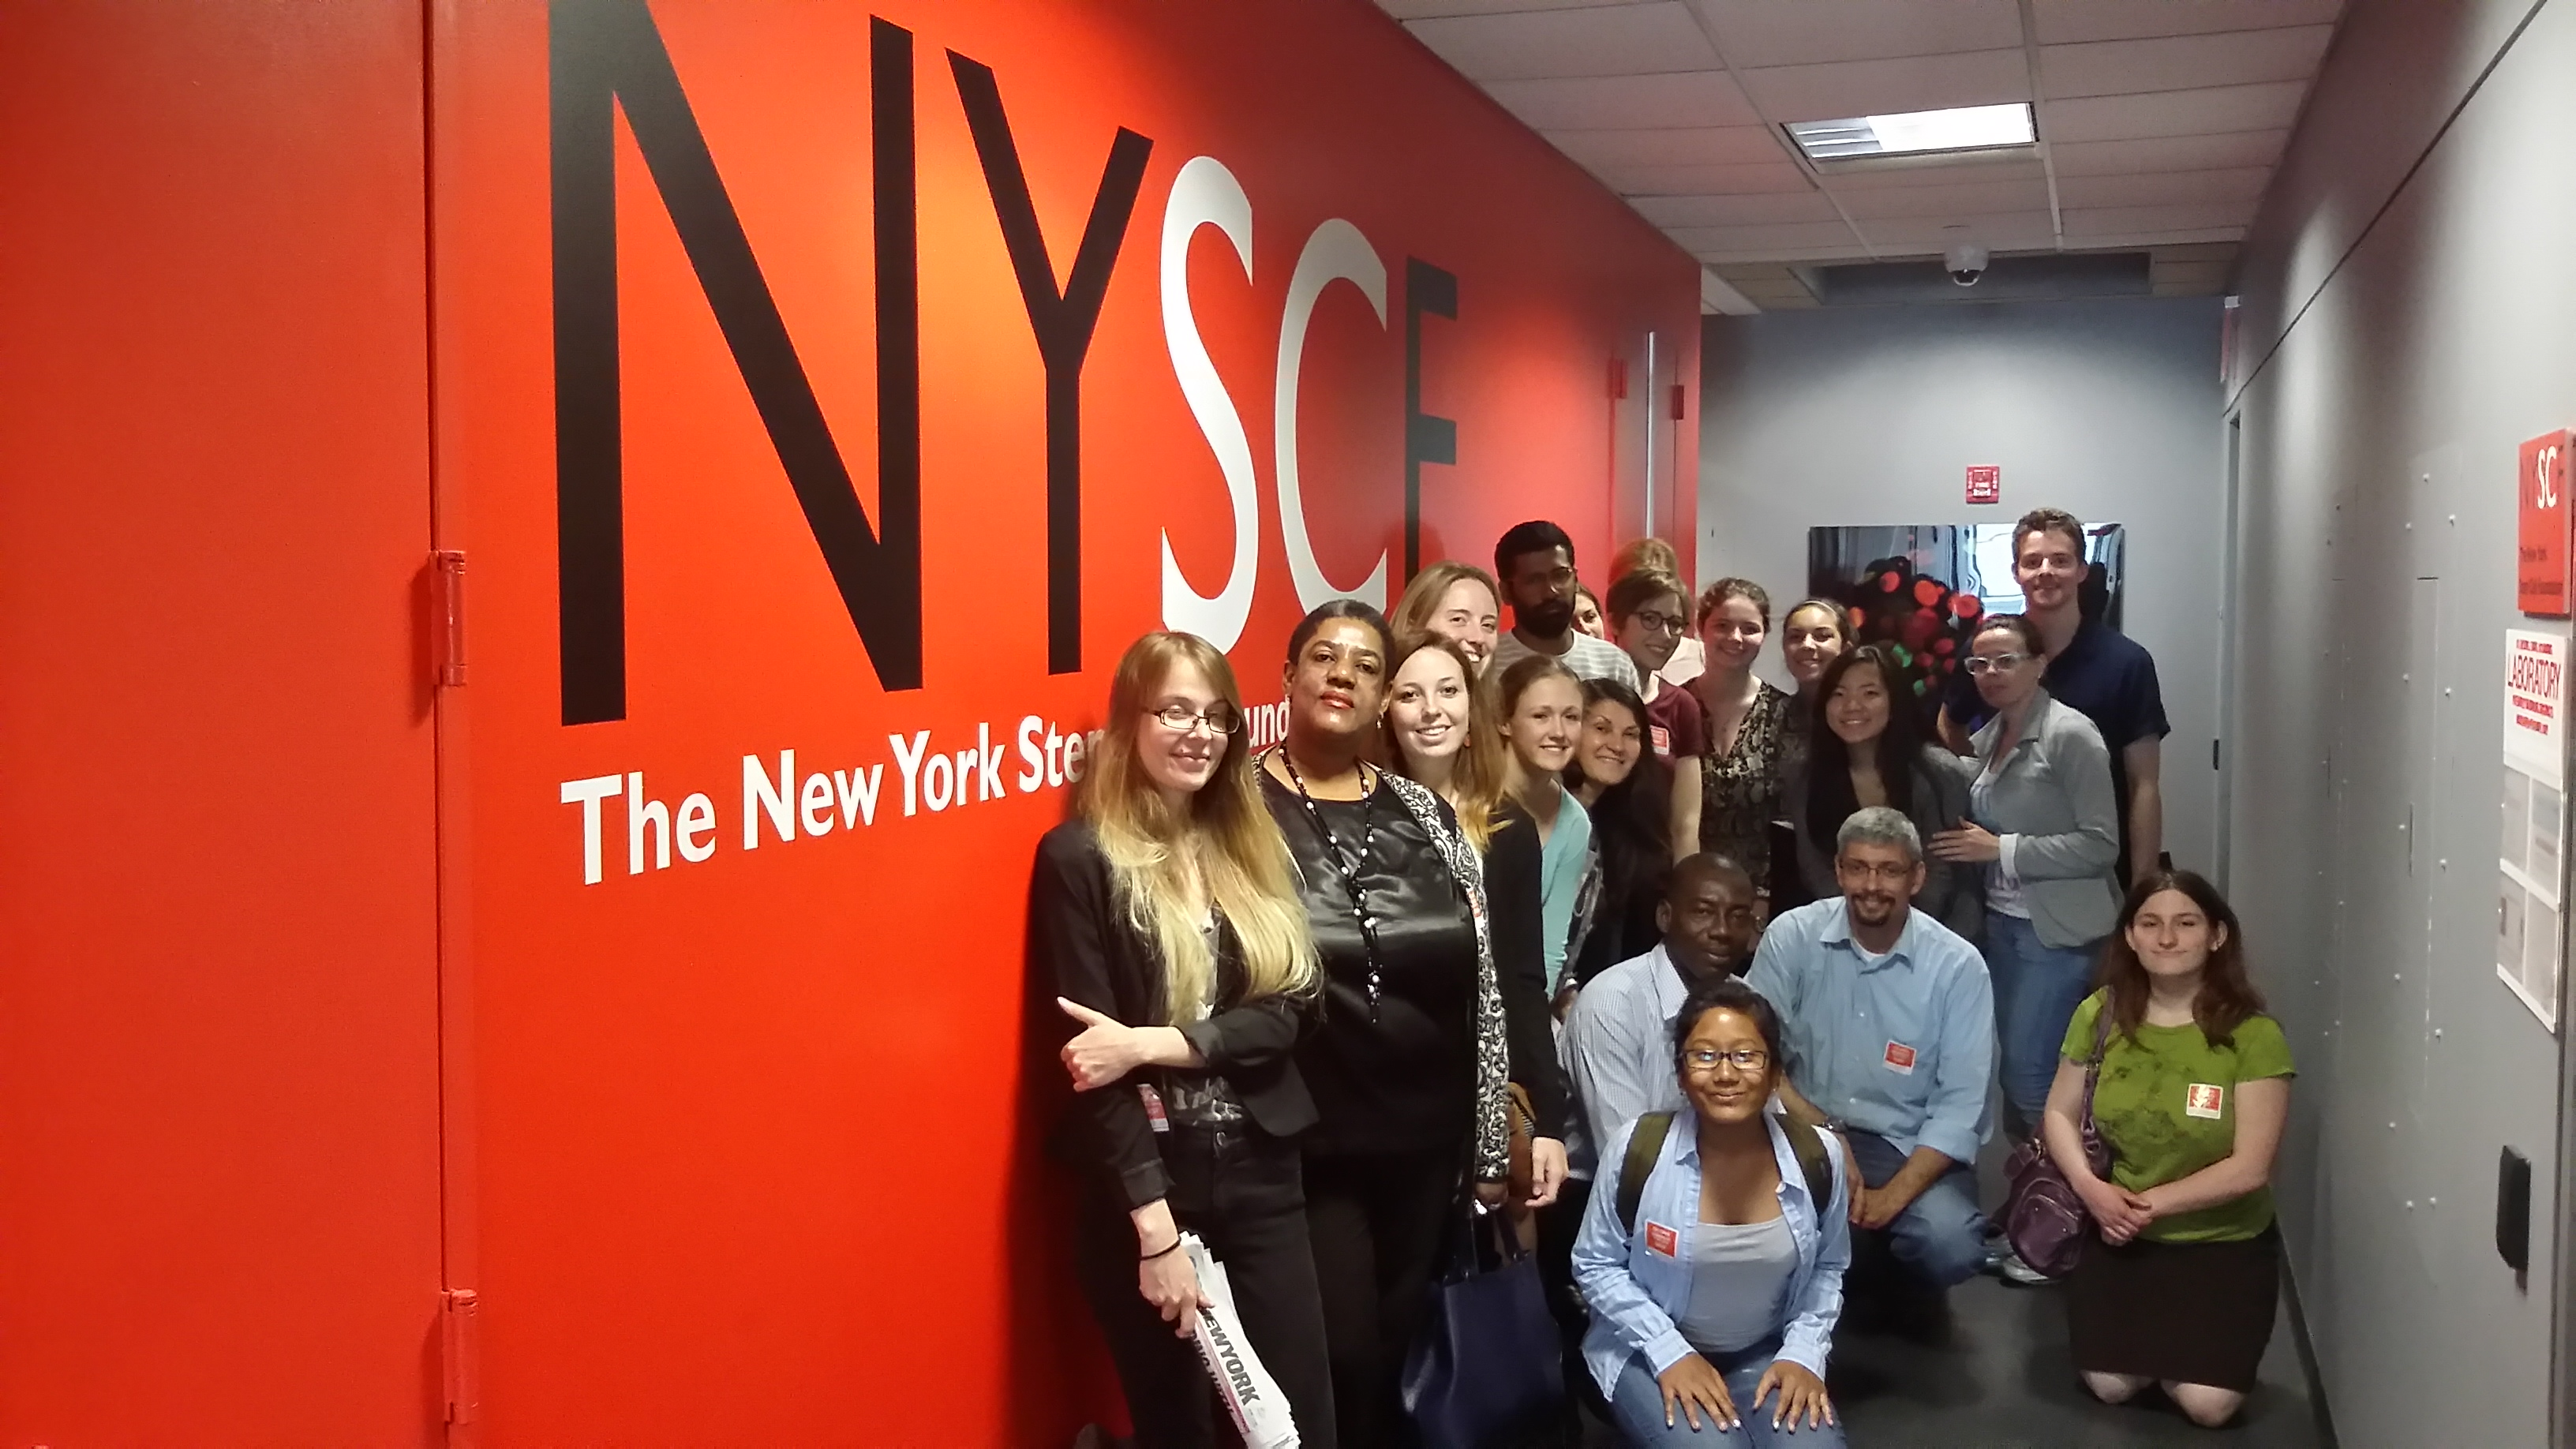 Summer school students visit The New York Stem Cell Foundation (NYSCF) for their first field trip during the Bioethics Summer School.